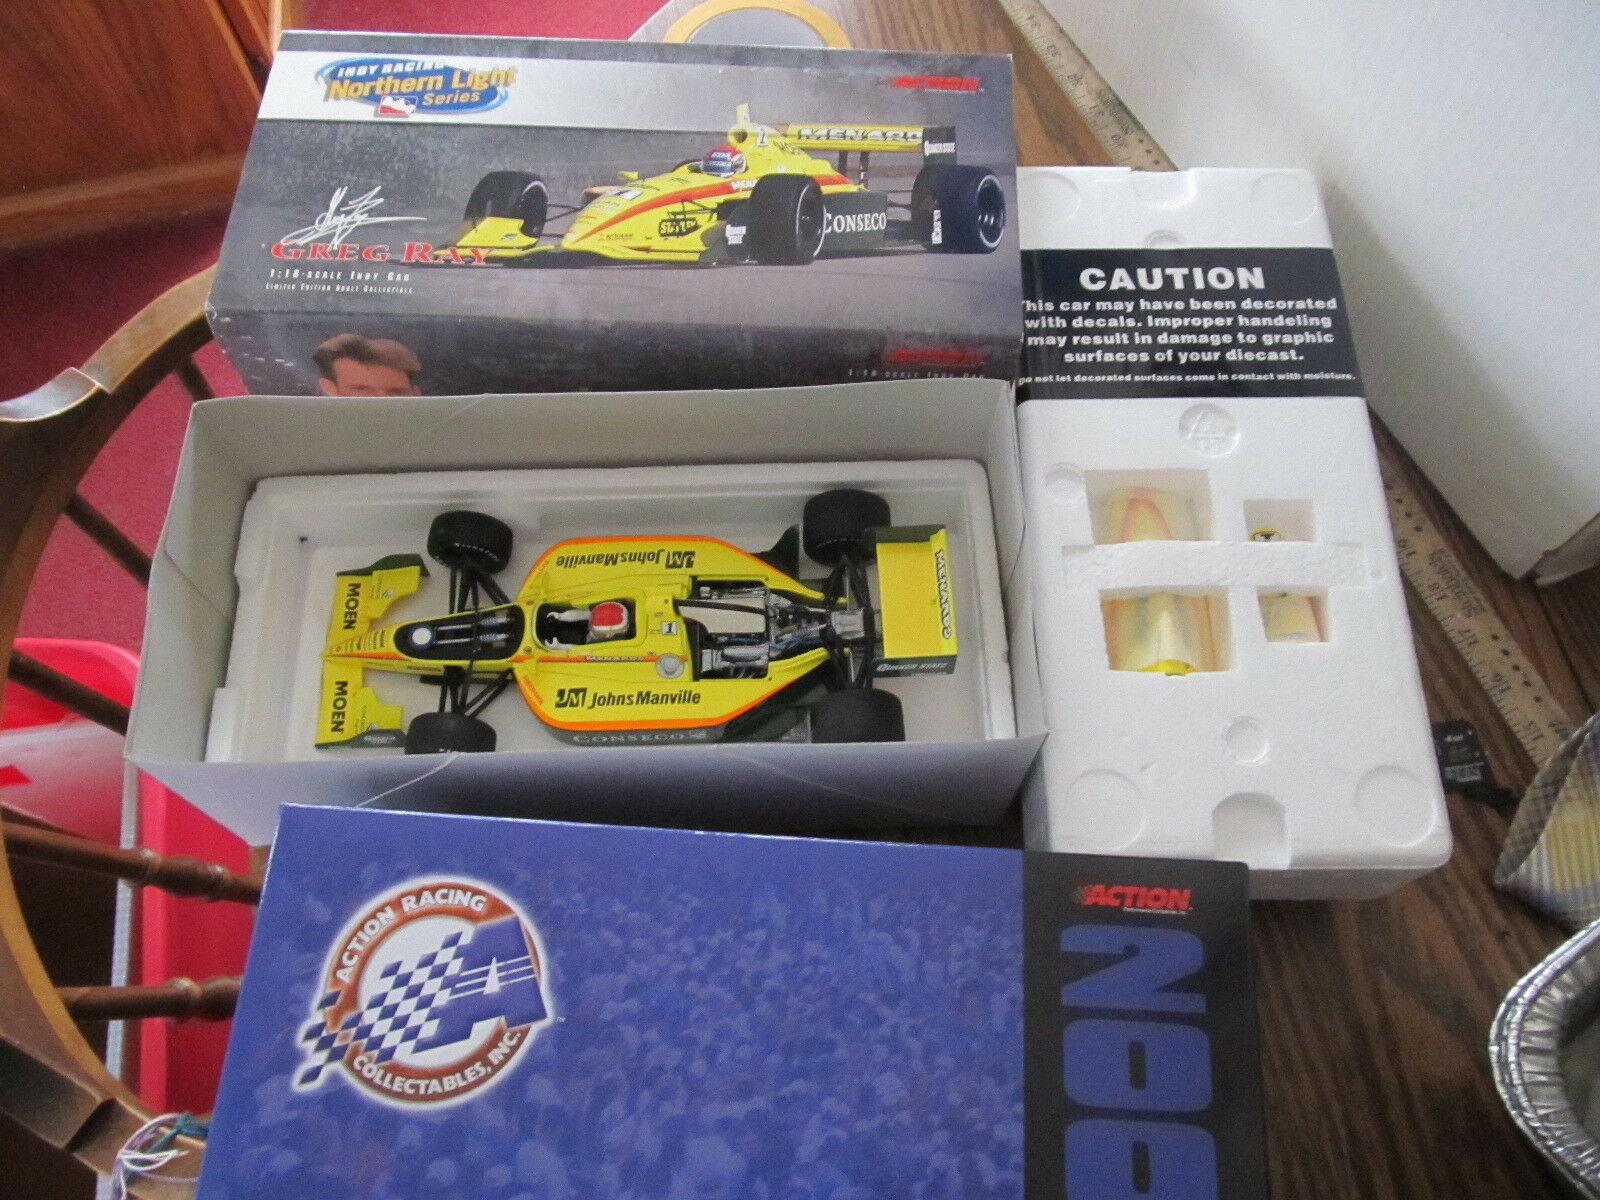 Action Racing Northern Light Greg Ray NEW IN BOX 1:18